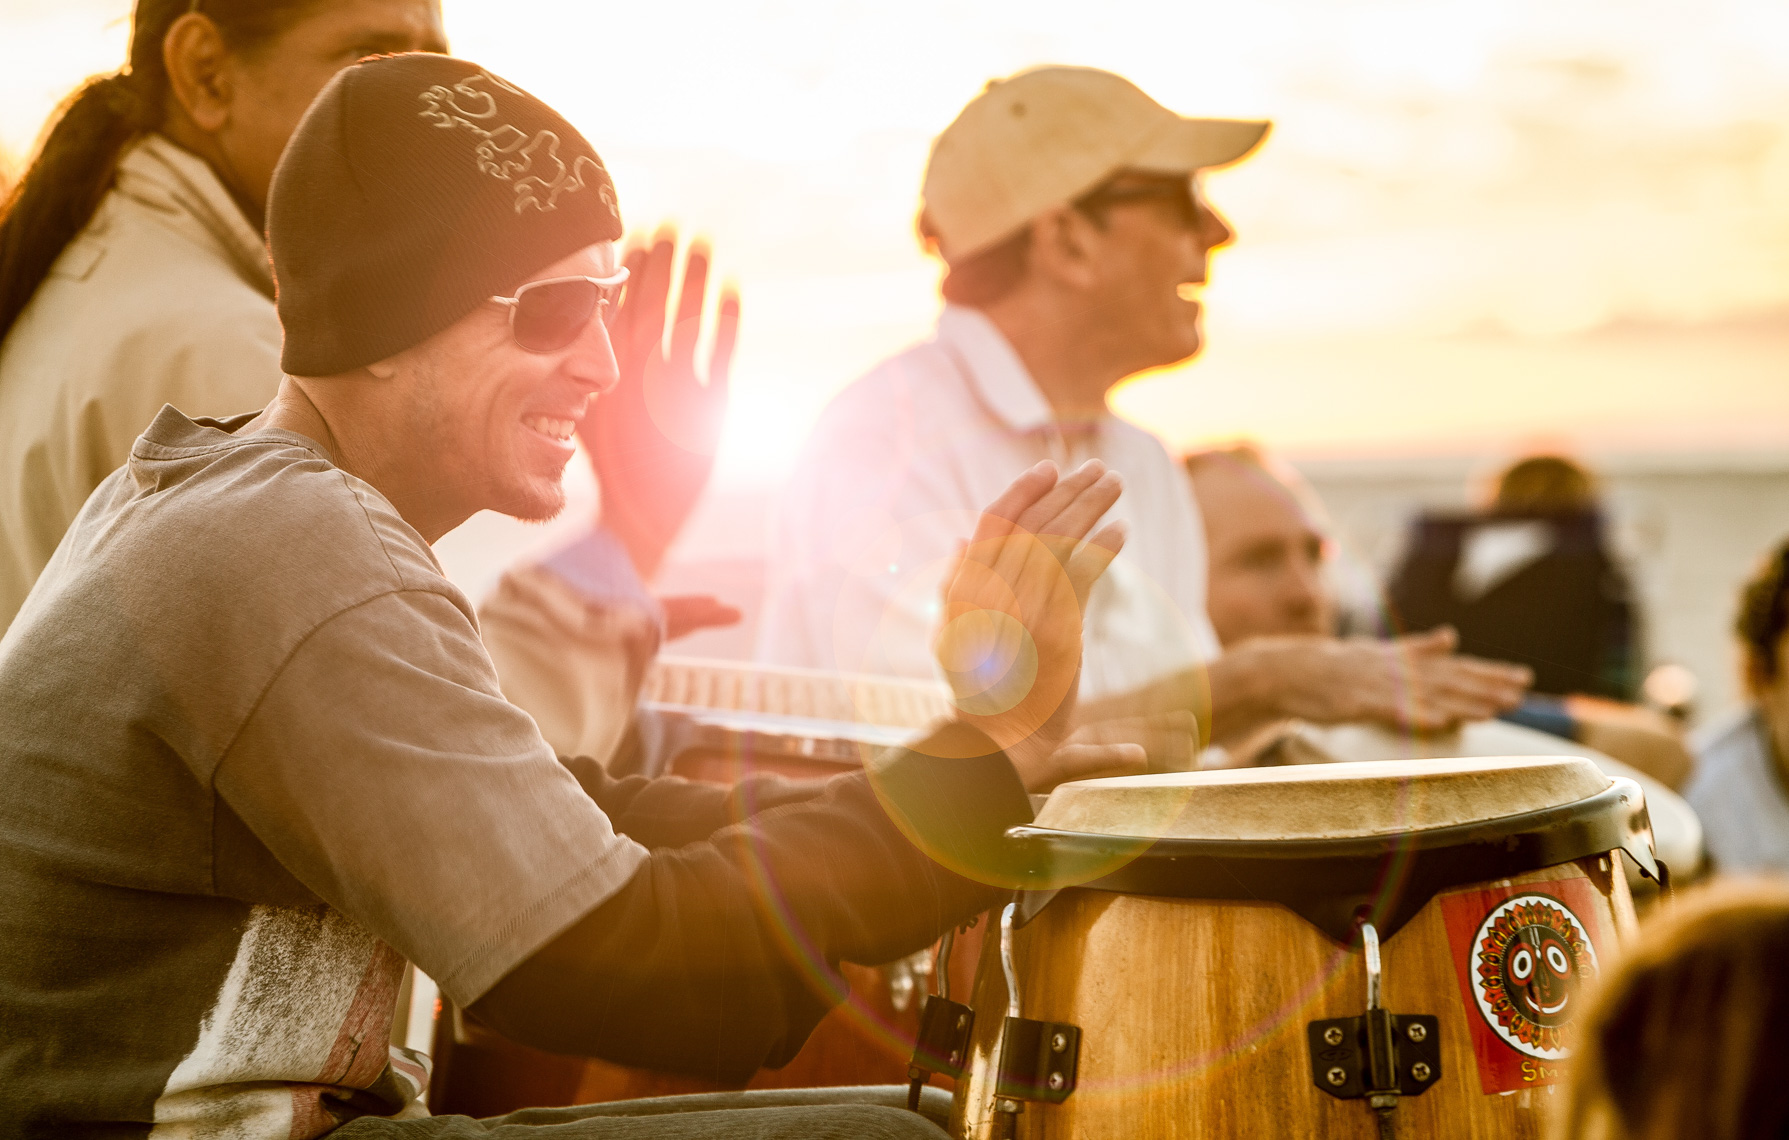 Drum Circle on beach, shot by Steven P. Widoff, editorial, lifestyle and advertising commercial photographer in Tampa, Florida.